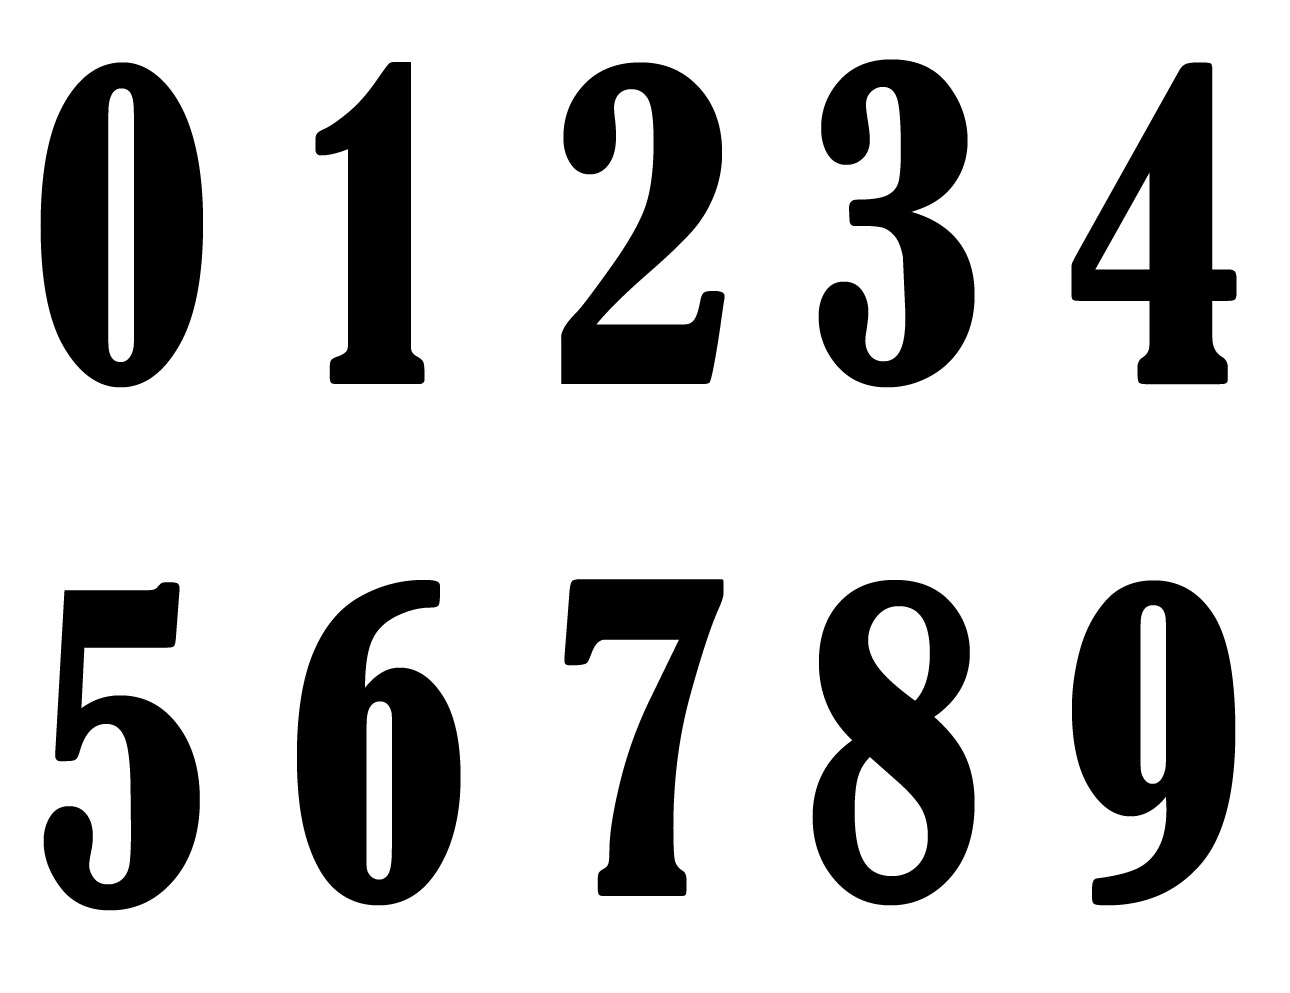 Maurits Burgers Digits Spelling Number Poetry Nadazero Unaone Bissotwo